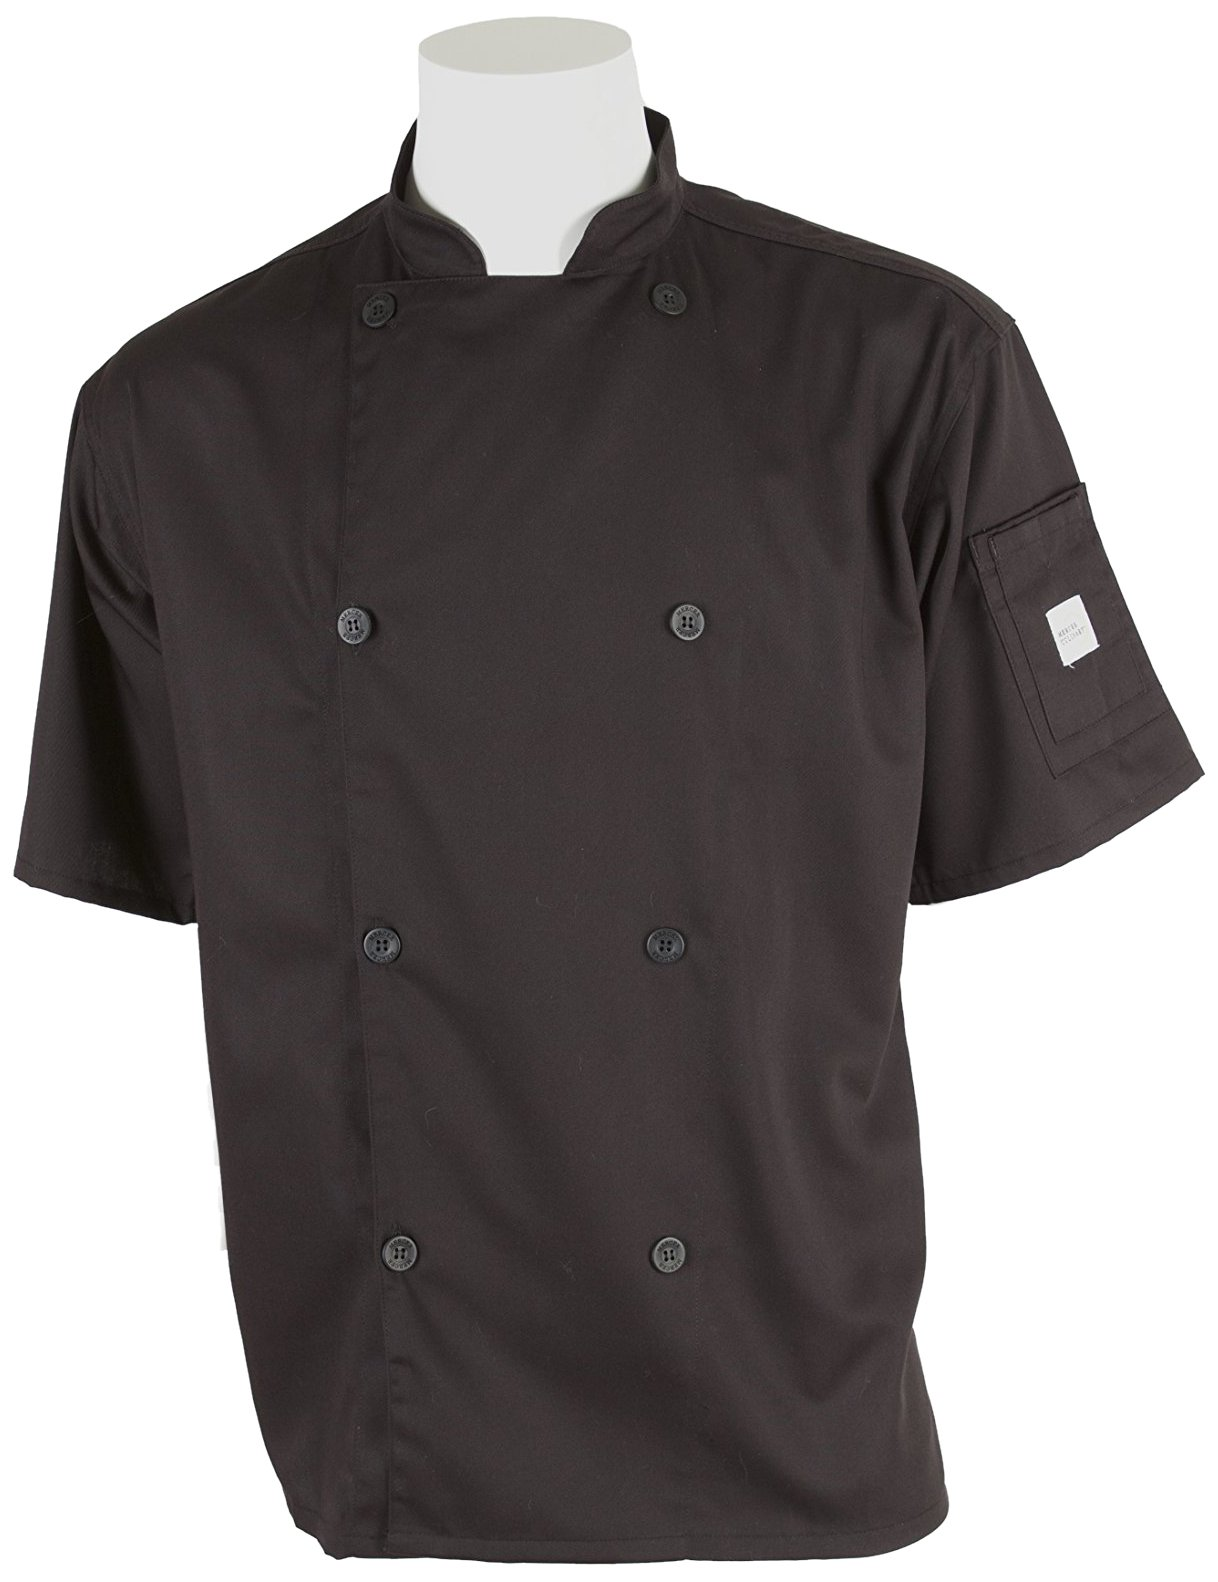 Mercer Culinary M61012BK7X Genesis Men's Short Sleeve Chef Jacket with Traditional Buttons, 7X-Large, Black by Mercer Culinary